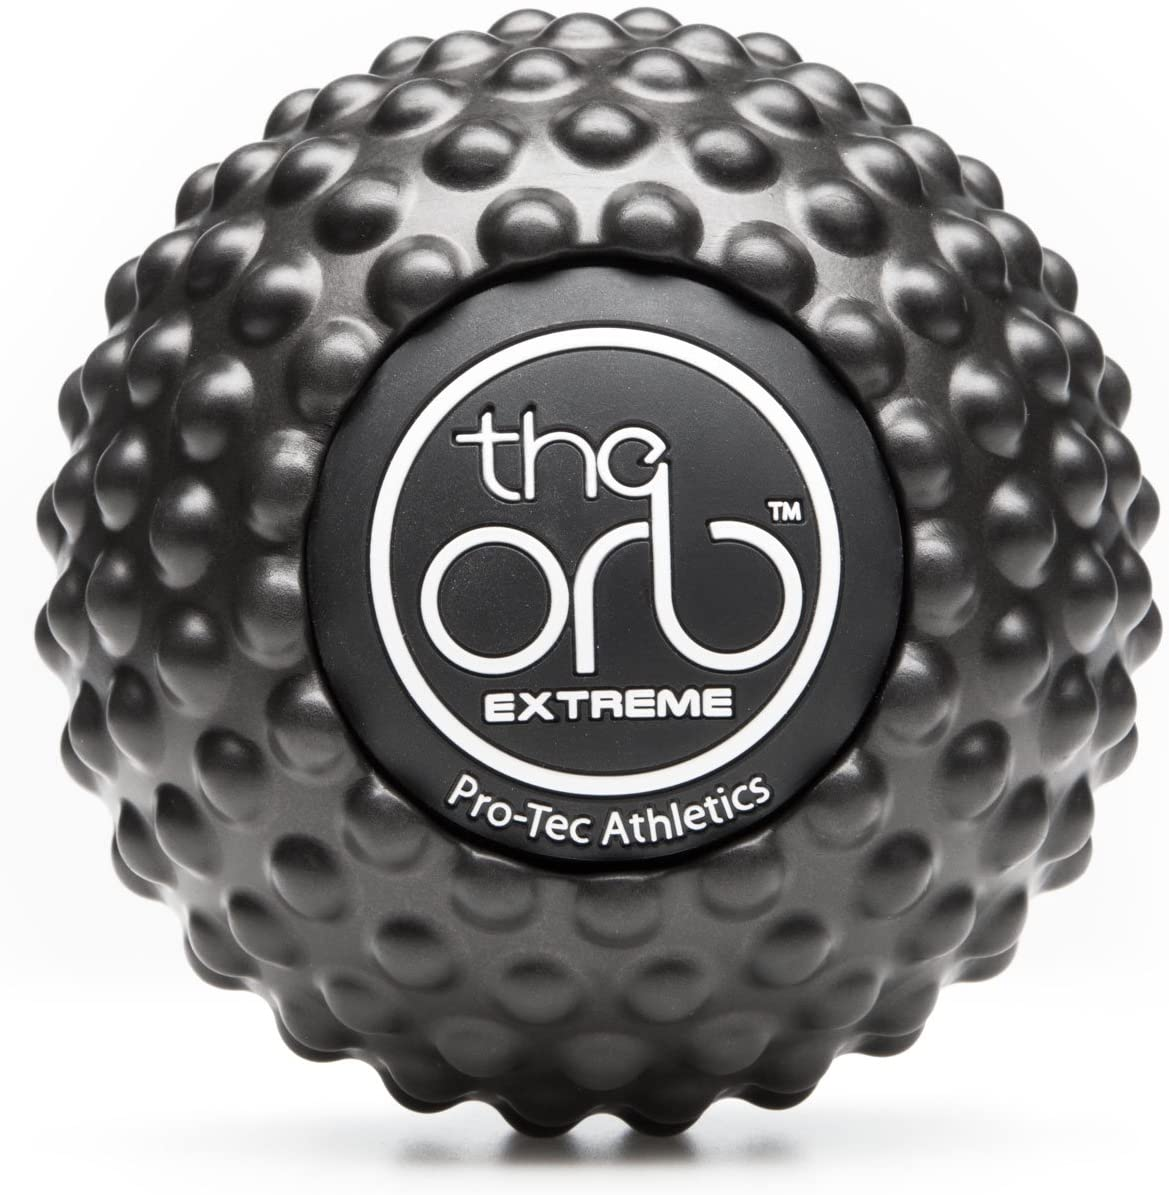 Pro-Tec Athletics Orb, Orb Extreme, and Orb Extreme mini mobility massage balls